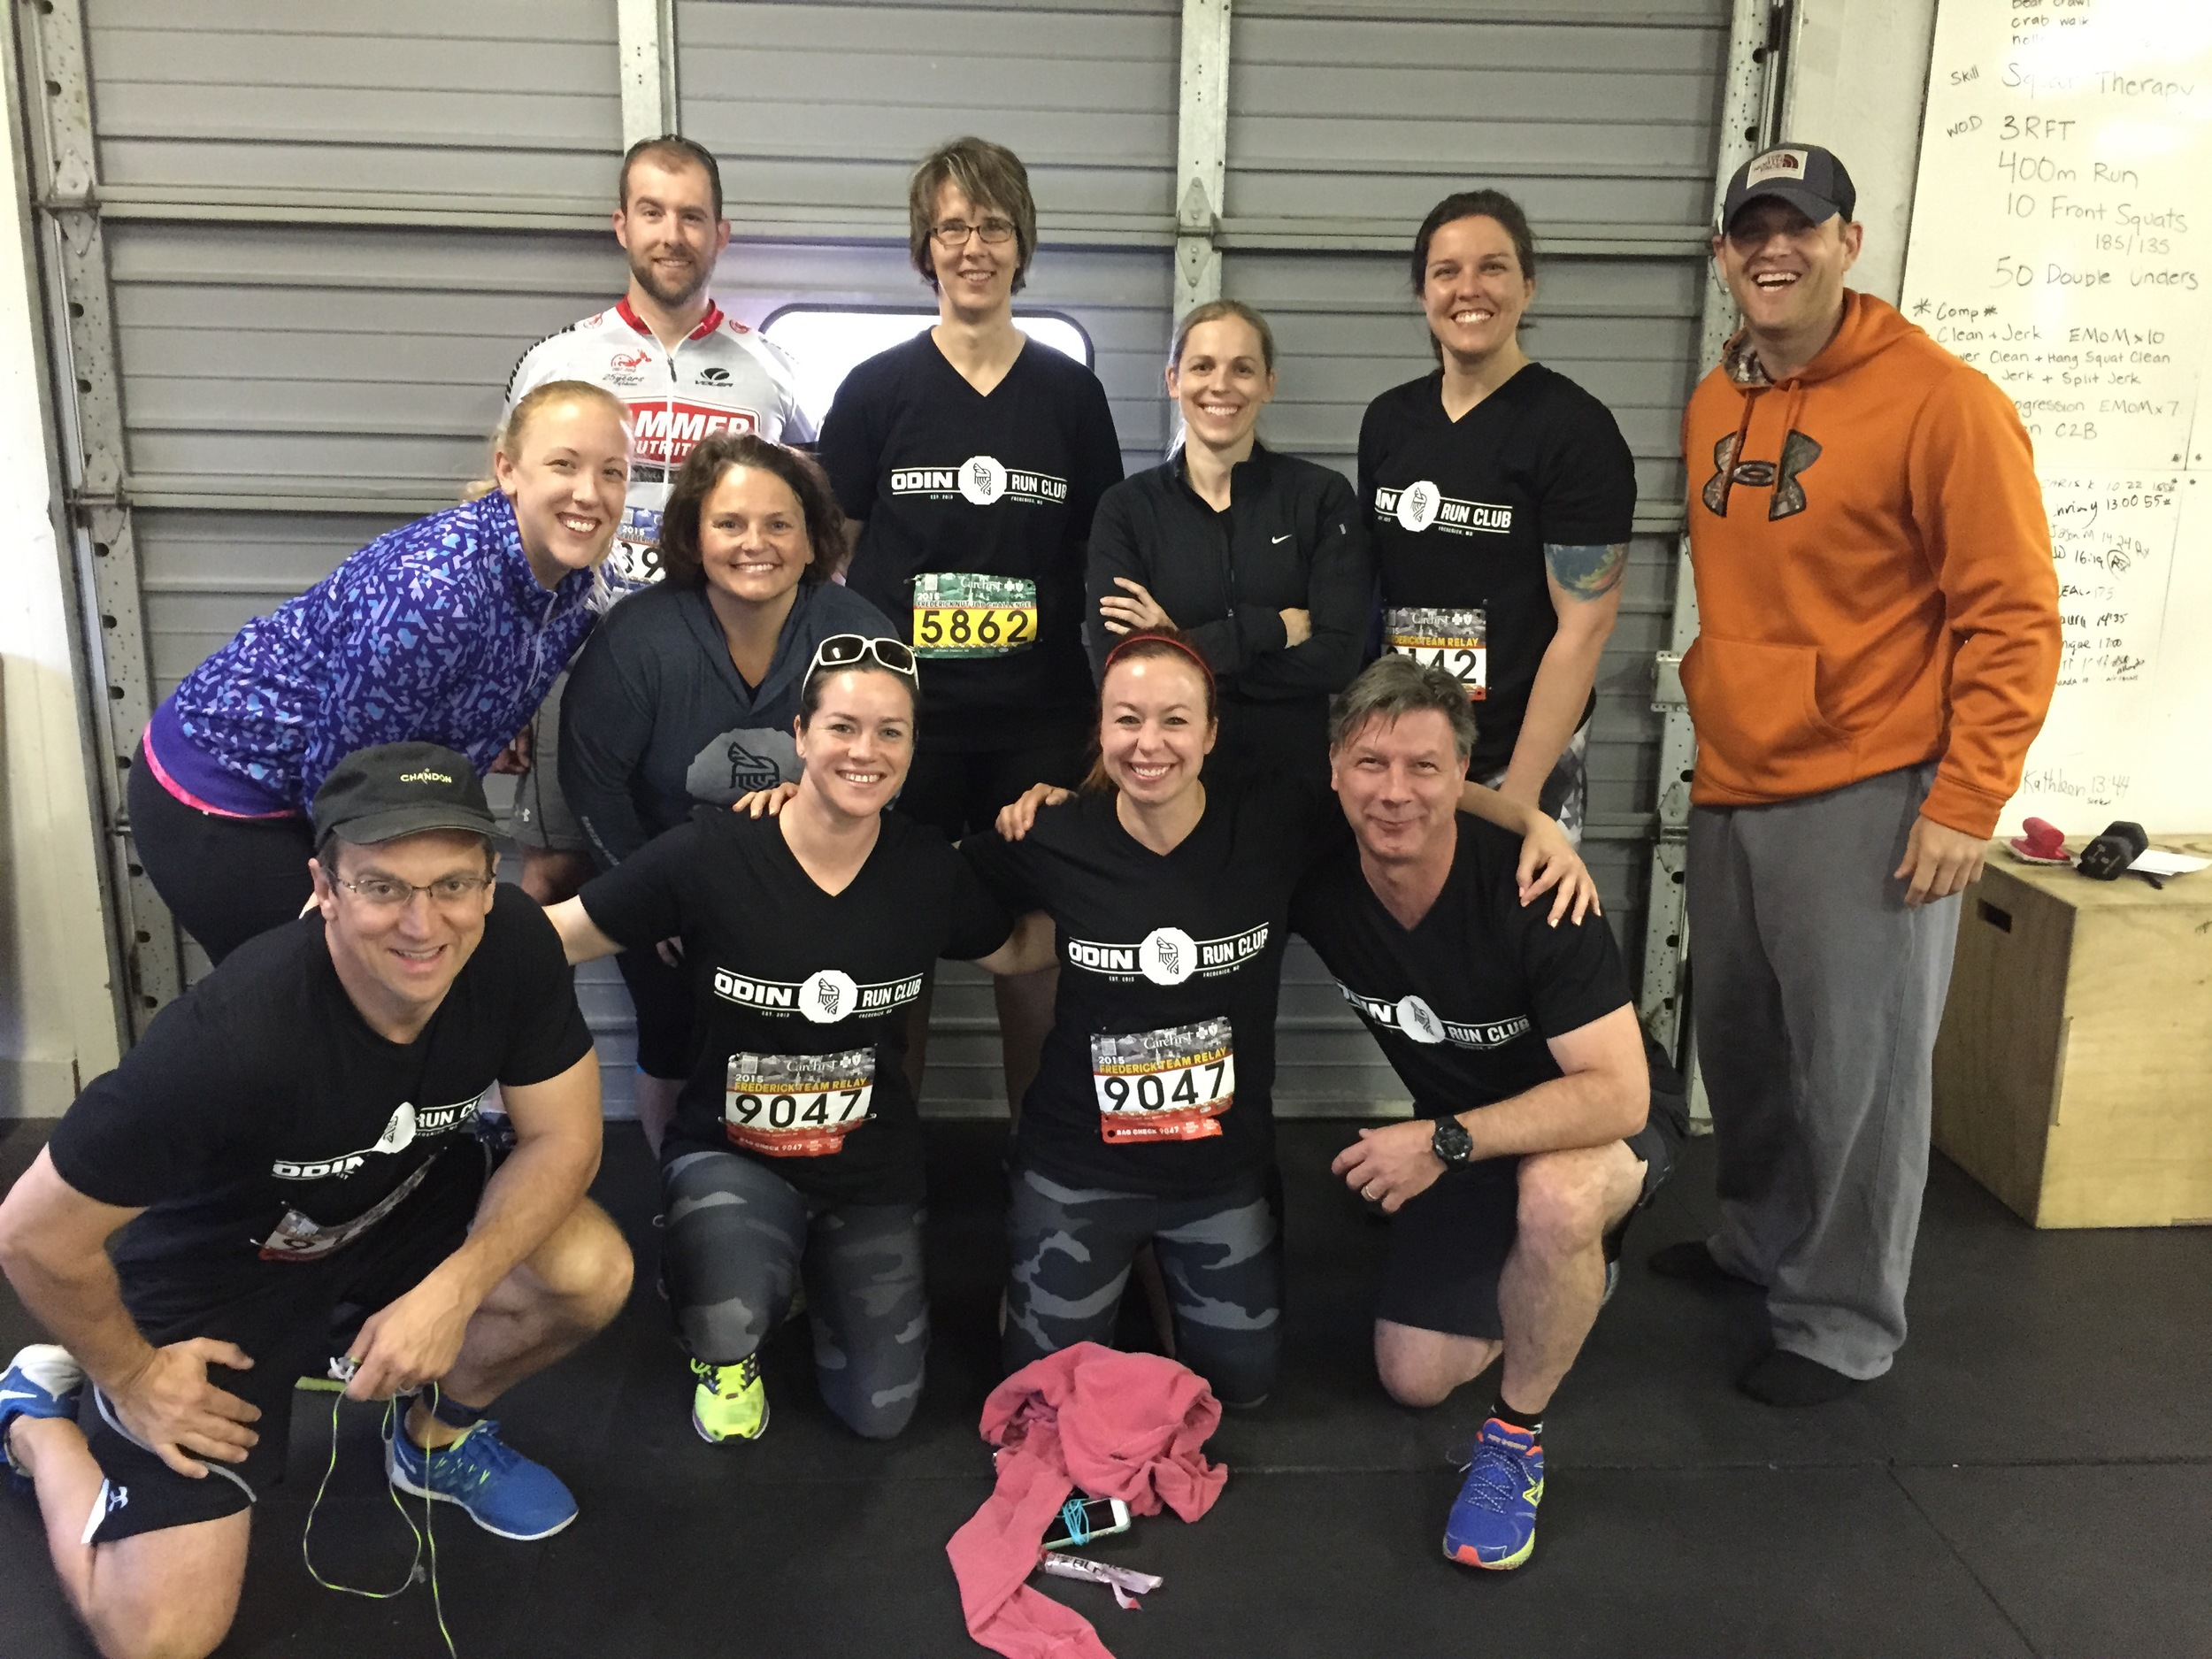 Congrats to everyone who ran the Frederick Half or Relay! It was a beautiful day. Next time, we should all train!